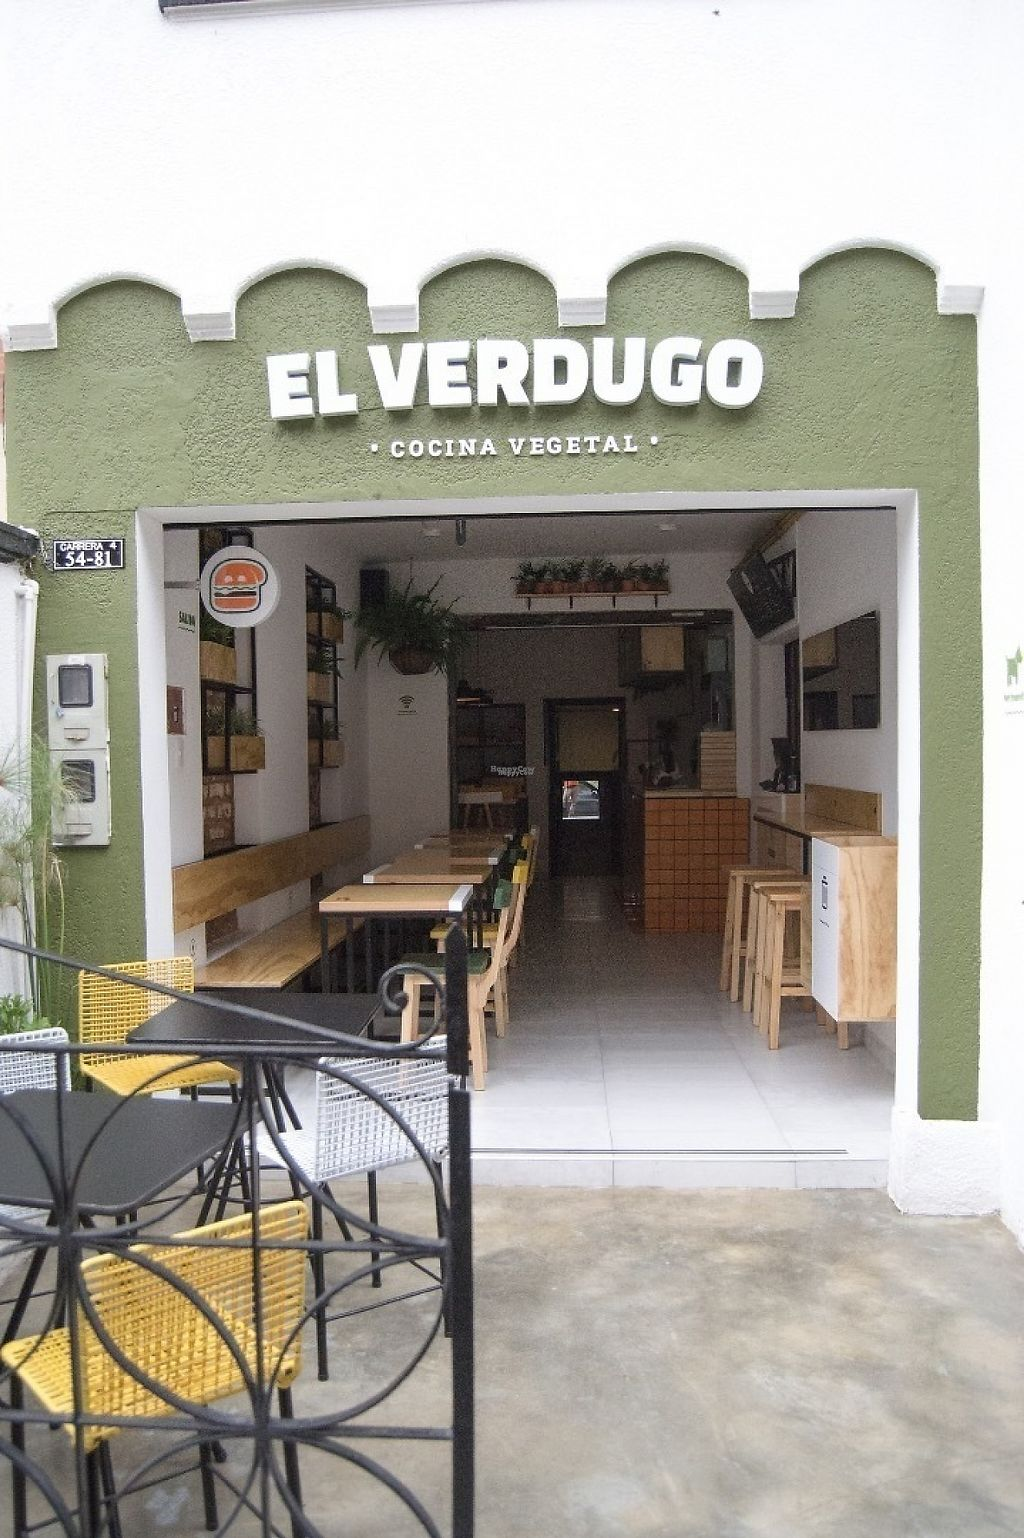 """Photo of El Verdugo  by <a href=""""/members/profile/ElVerdugo"""">ElVerdugo</a> <br/>El Verdugo  <br/> November 21, 2016  - <a href='/contact/abuse/image/82228/192919'>Report</a>"""